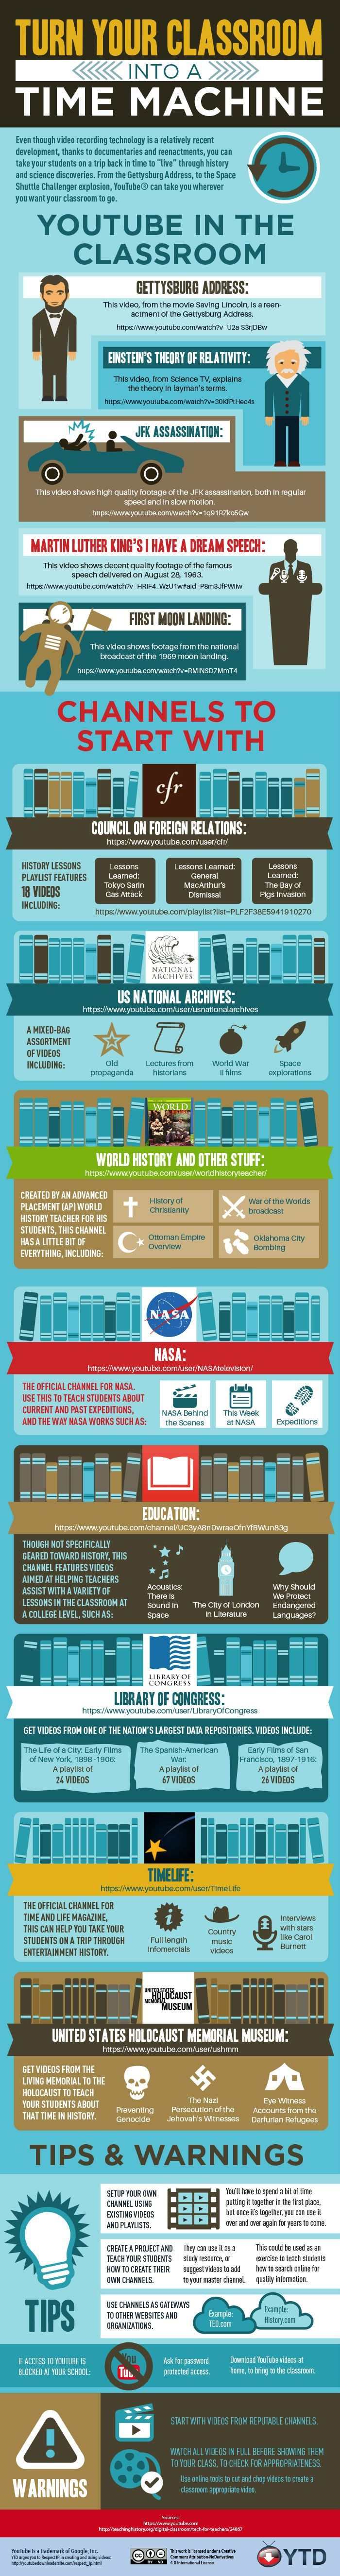 Turn Your Classroom Into A Time Machine [Infographic]